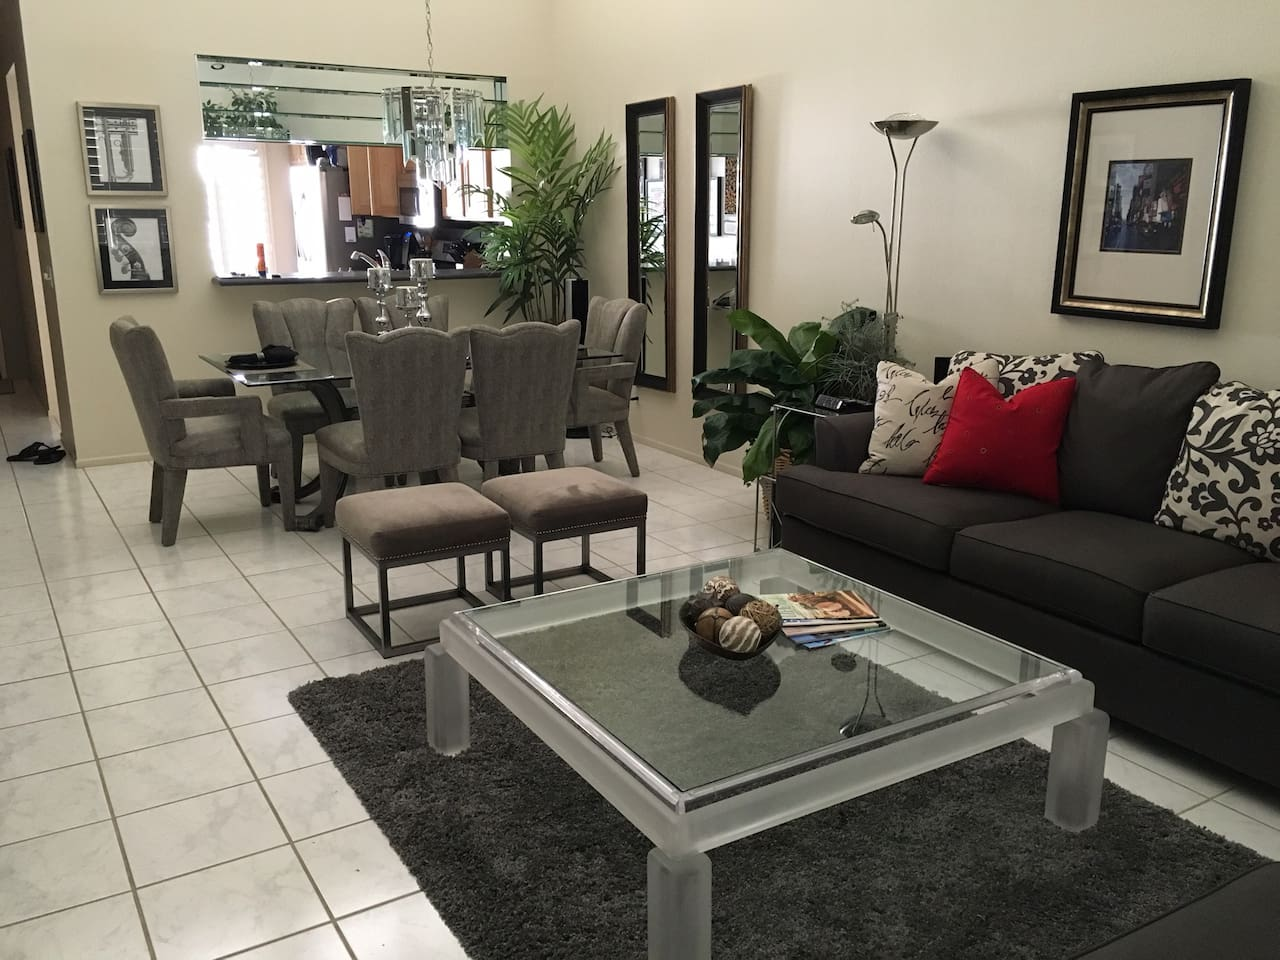 Living Room / Dining Area - Sofa opens to a queen size bed - flat screen, bluetooth and sound bar, plus a wet bar to enjoy your stay